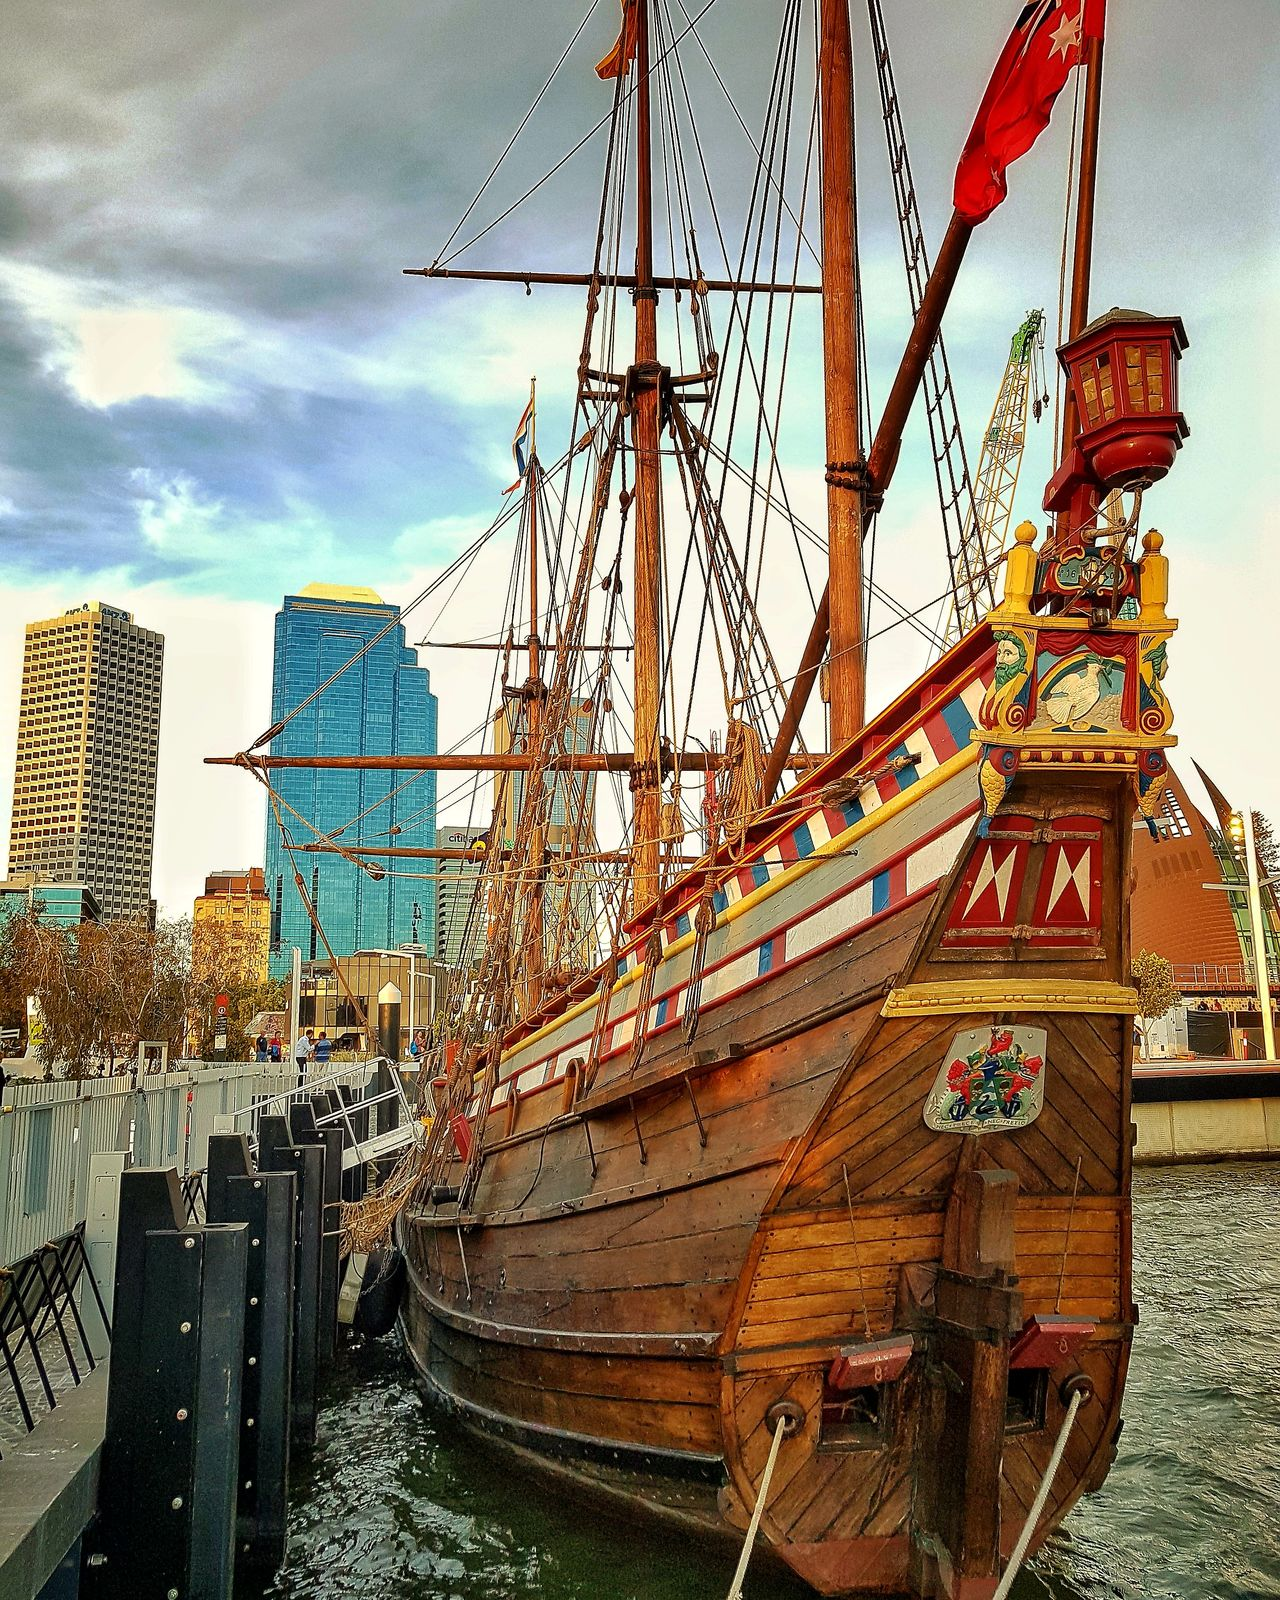 The Duyfken replica boat, moored at Elizabeth Quay in Perth Boats⛵️ Moored Harbour Outdoors